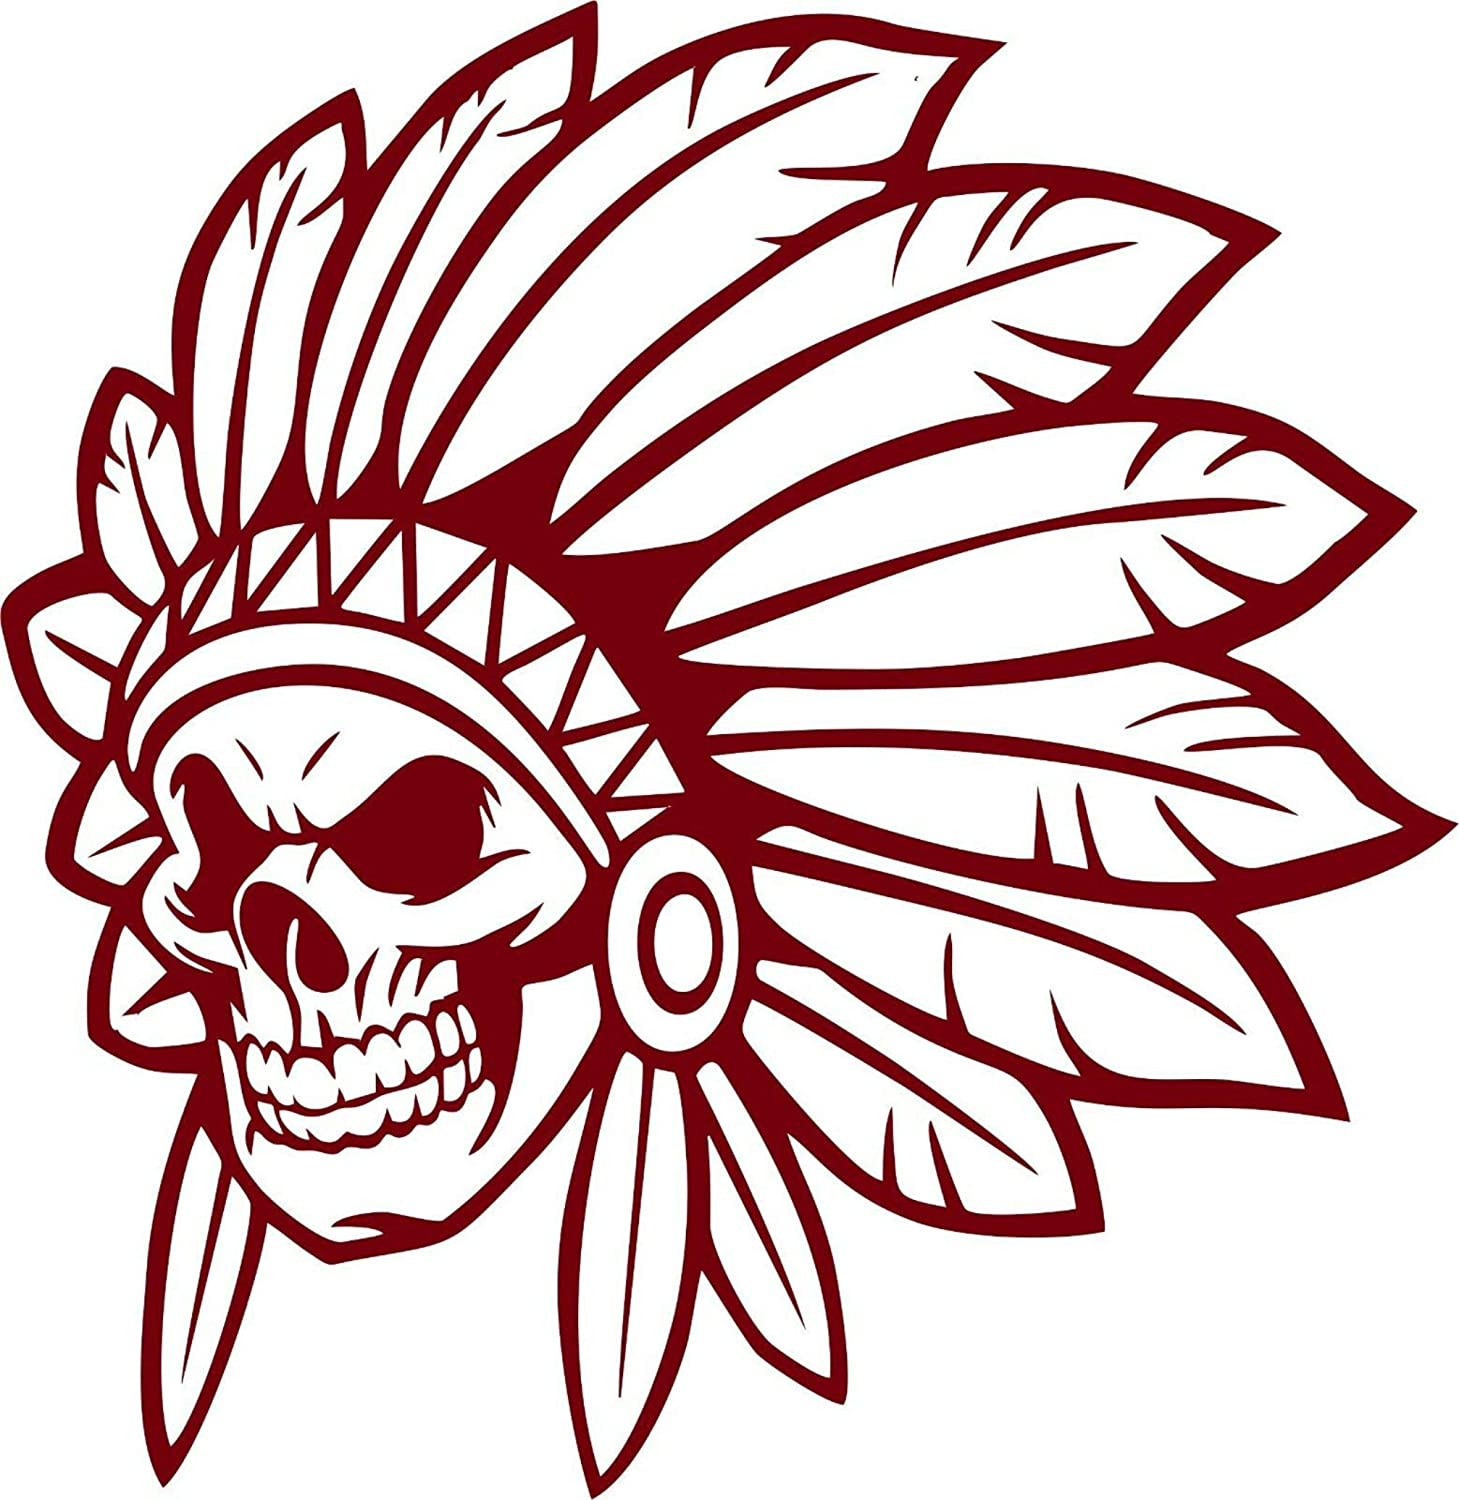 Native American Indian Chief Skull Face Skeleton Headdress Car Truck Window Vinyl Decal Sticker